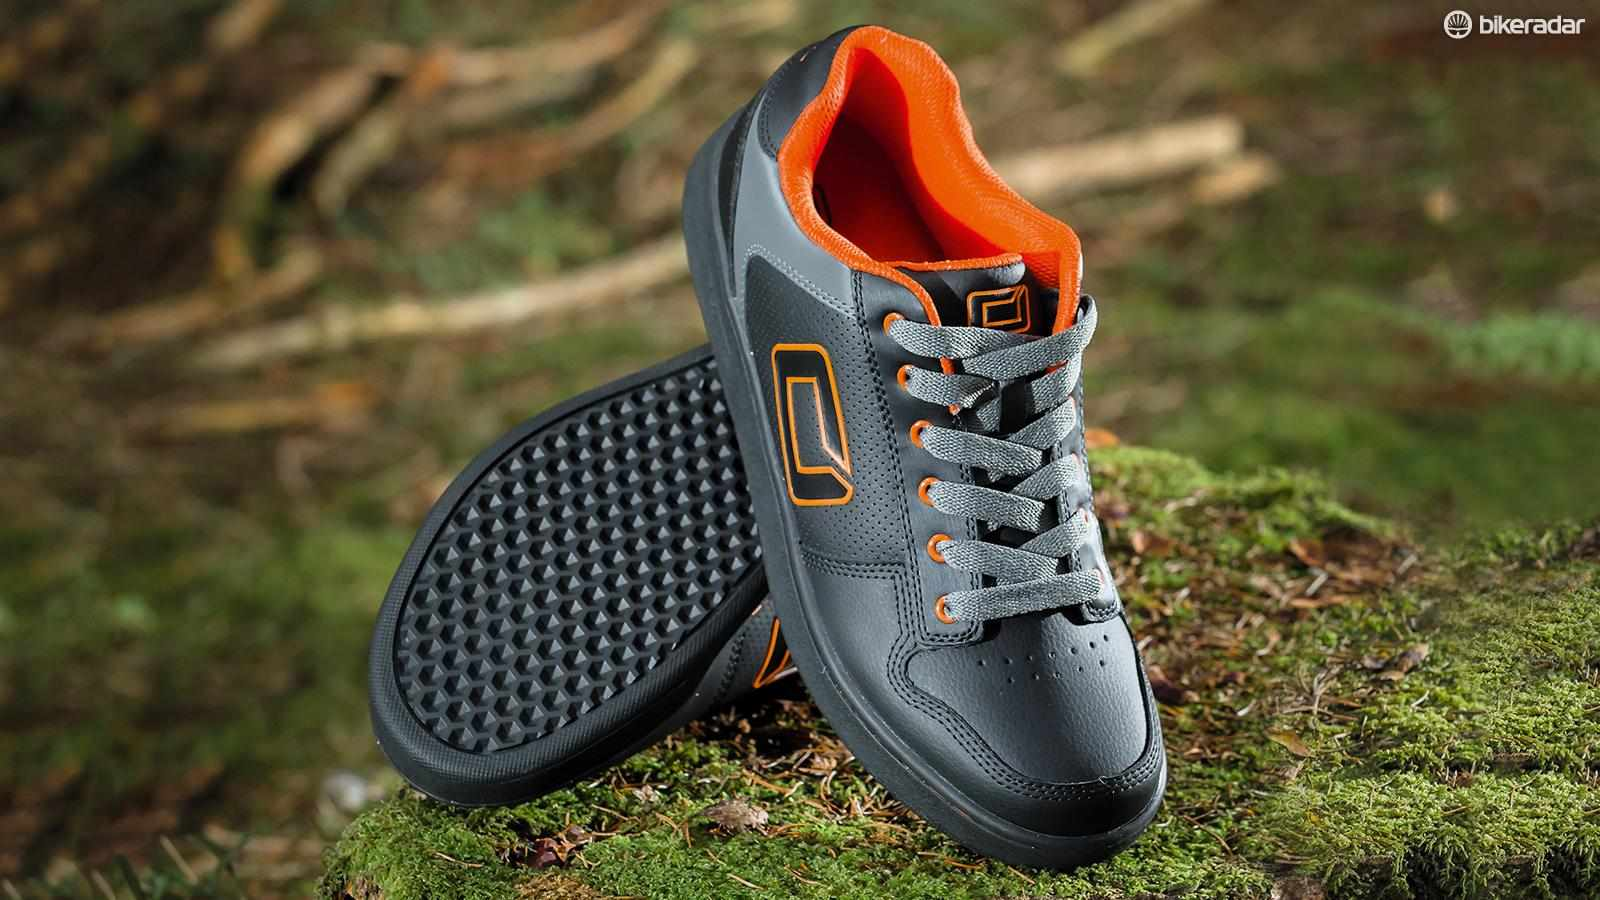 O'Neal's Stinger IIs are nice looking, comfy shoes but they're not the best for serious MTB use